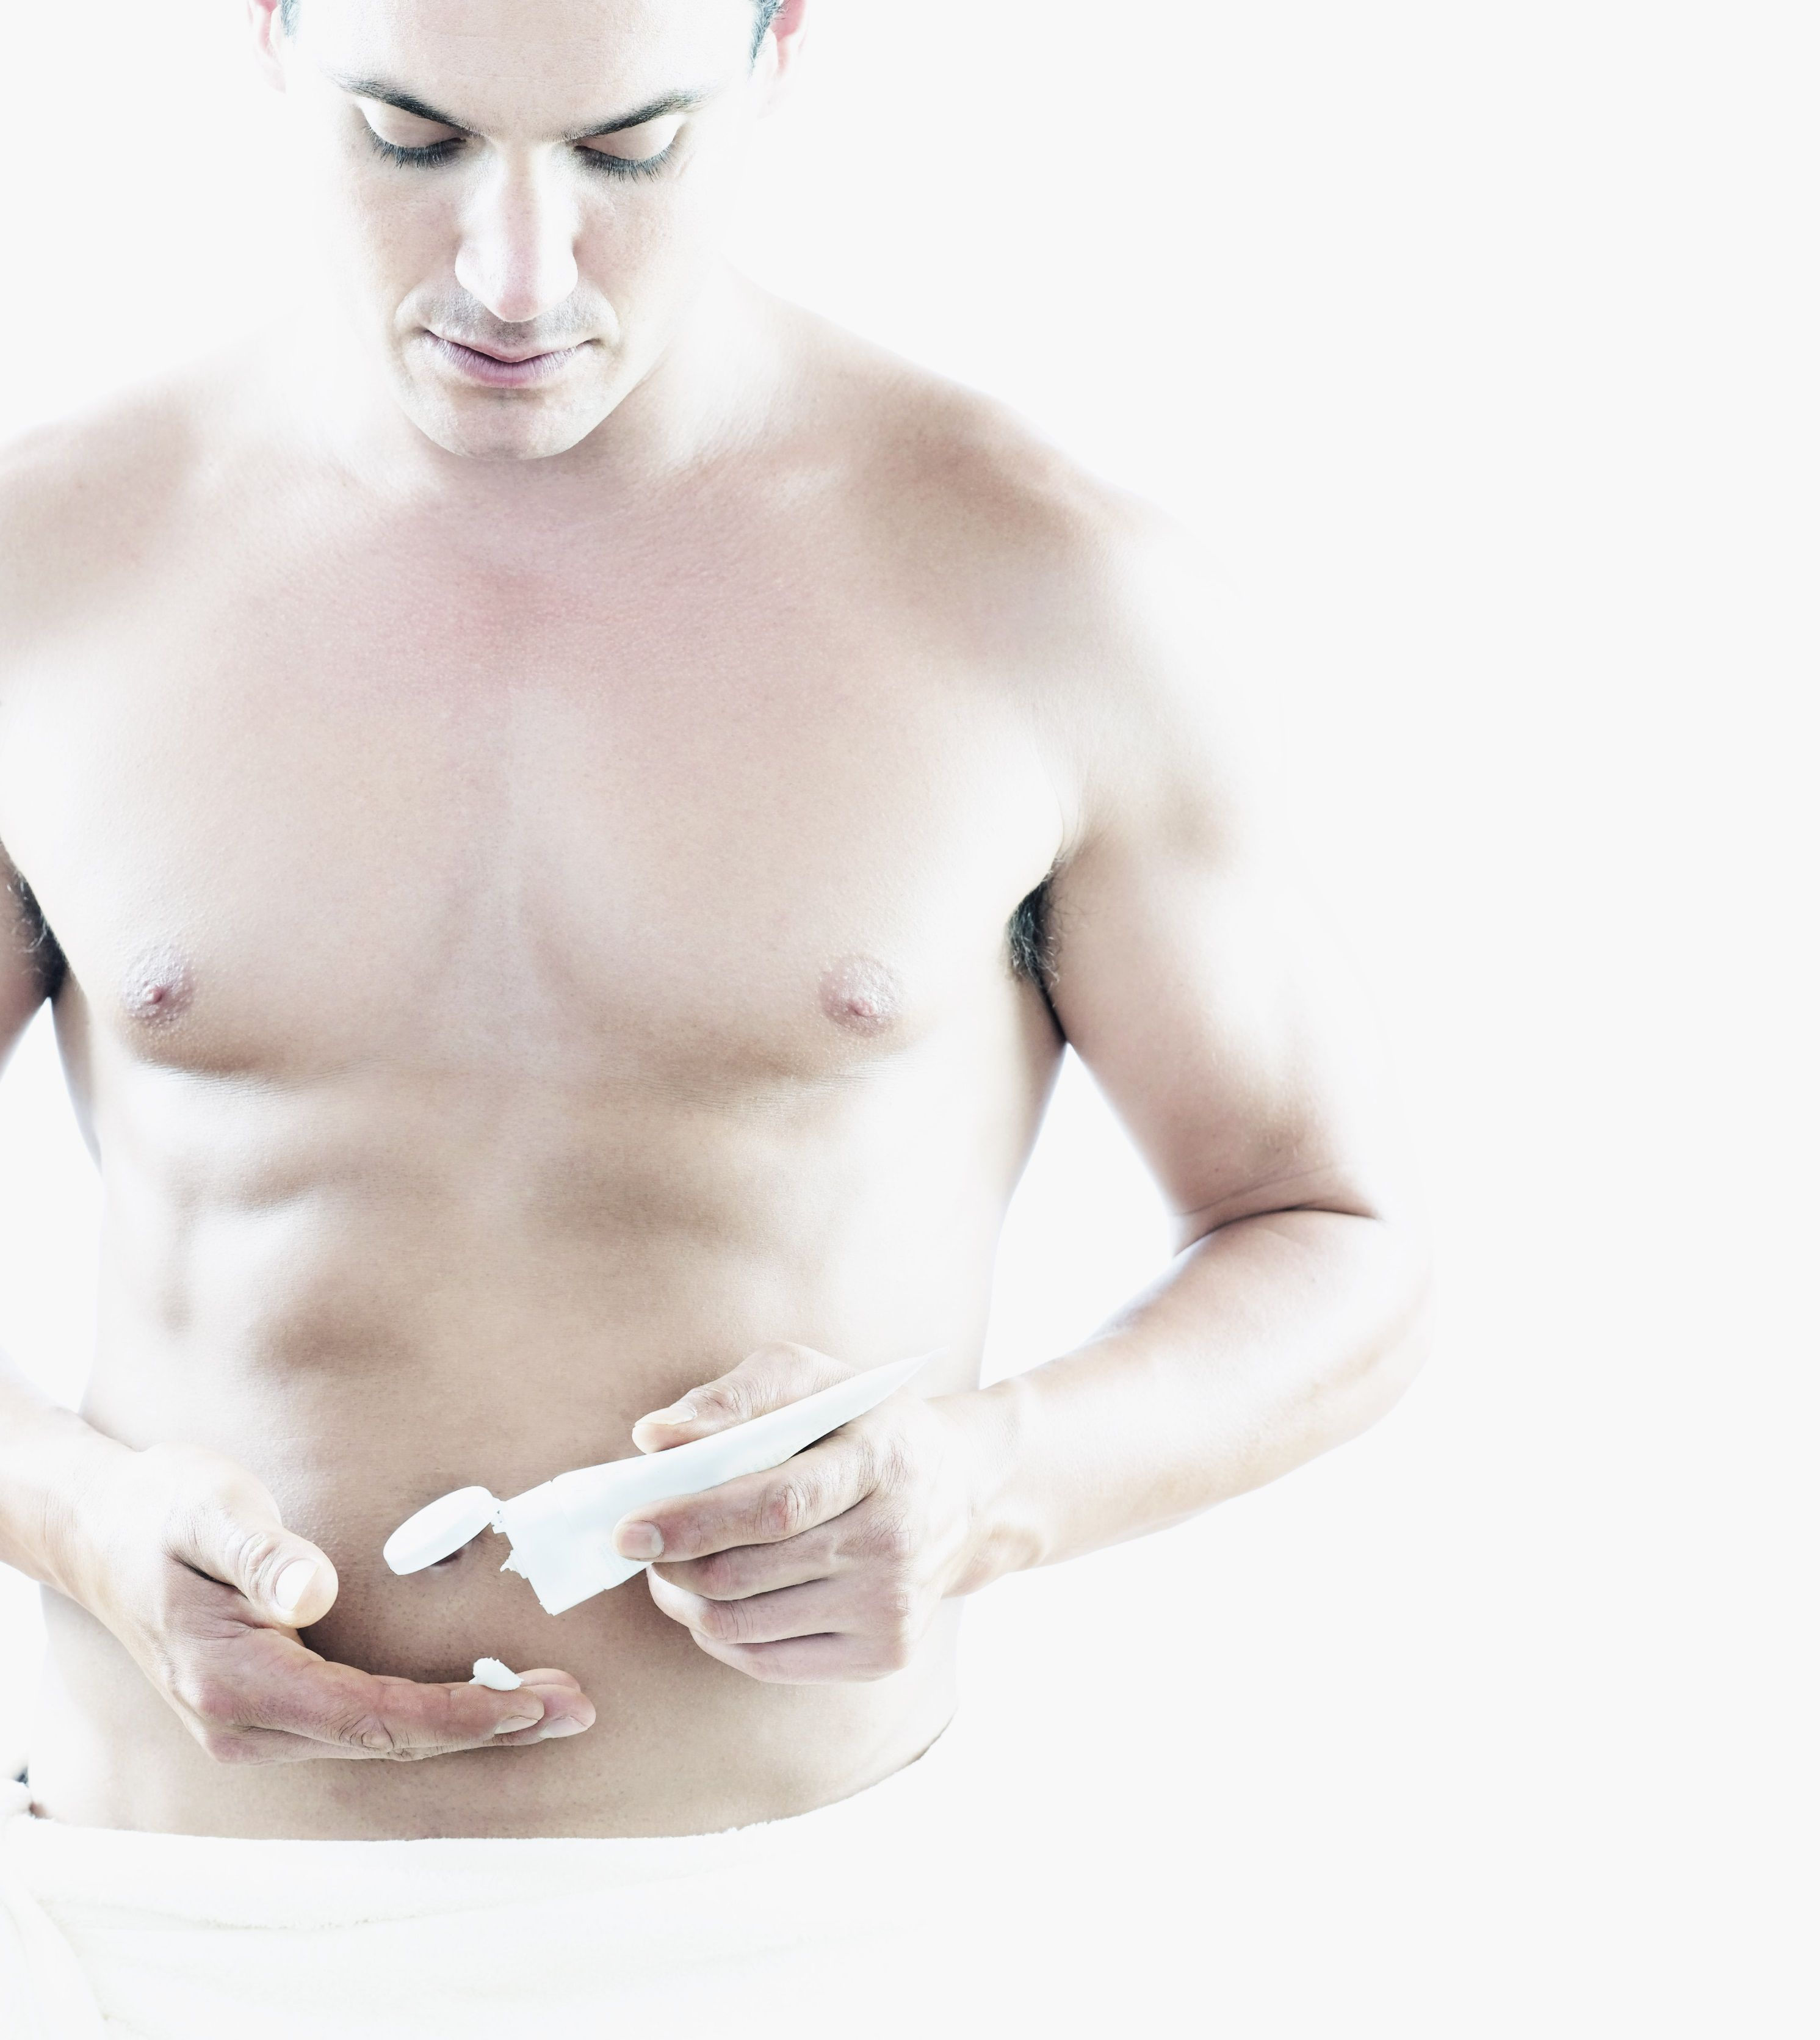 how often should you shave your chest